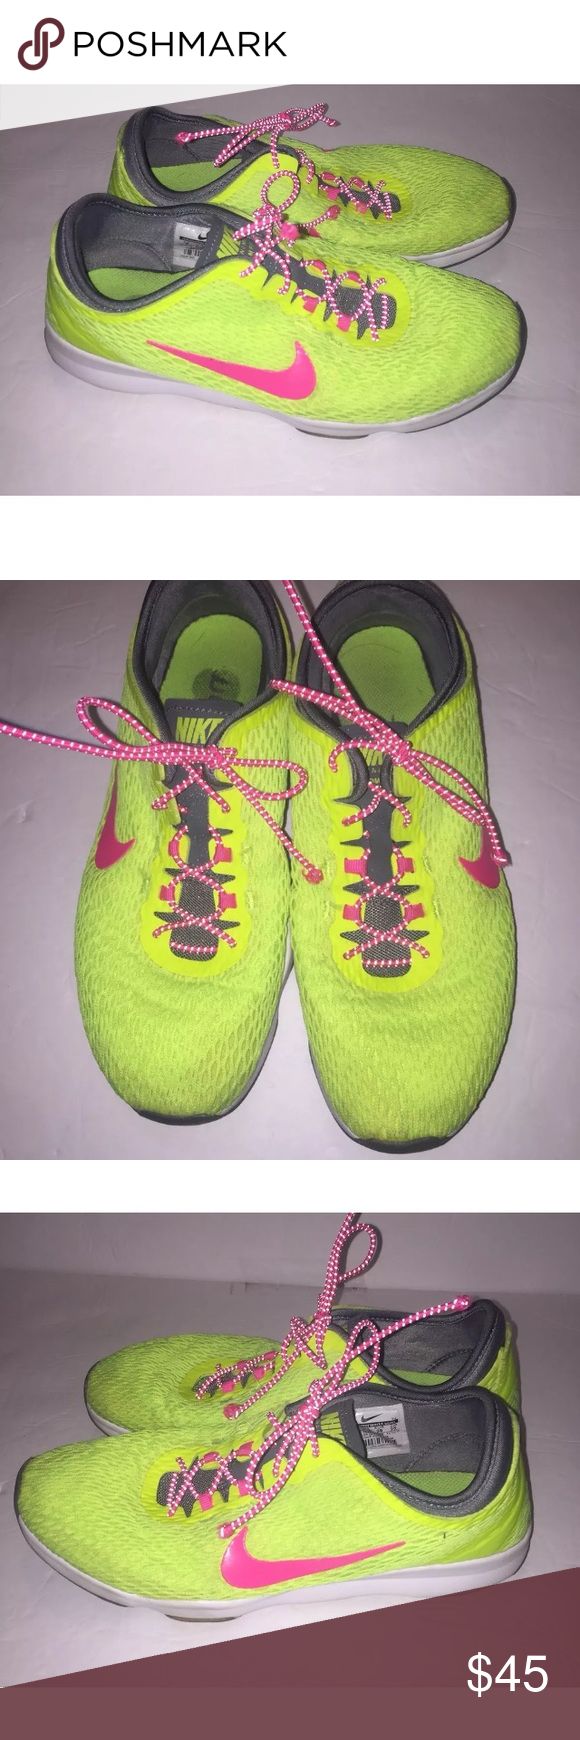 best website 33c37 9c7cc Nike Zoom Fit Training Sneakers 704658-700 Neon Nike zoom for training  sneakers size 8 in good condition. Color is neon green and pink.